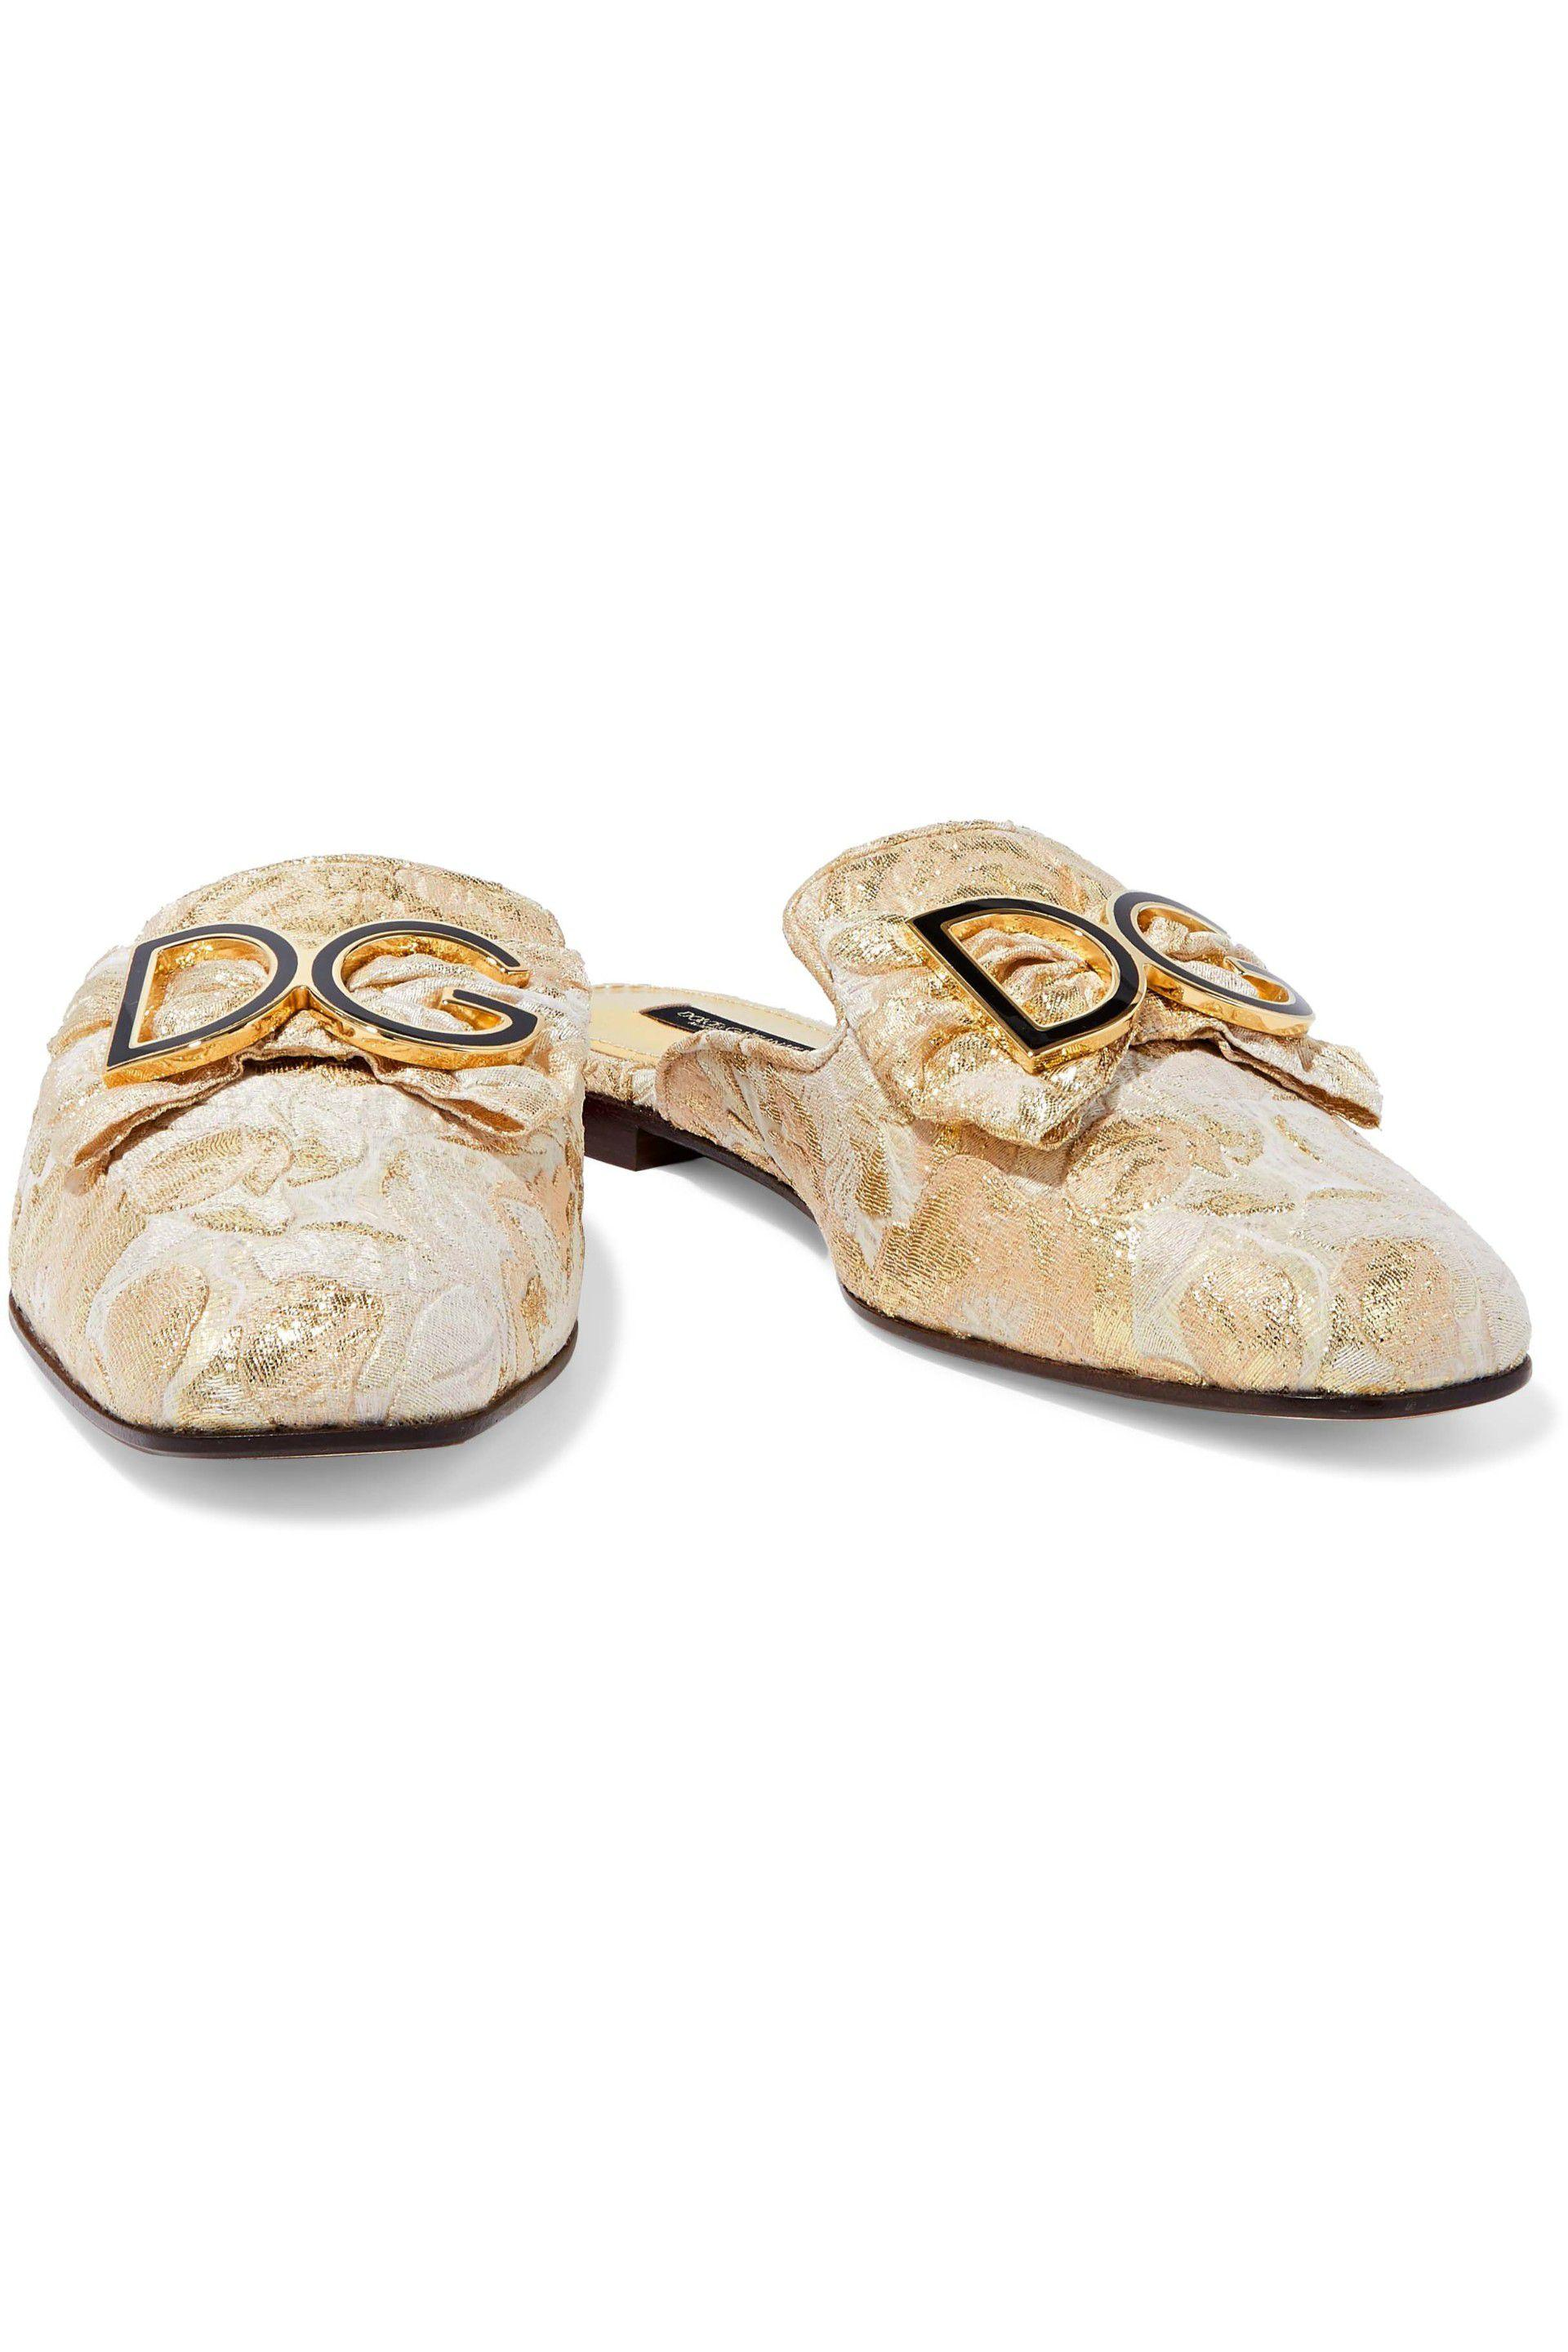 3c9e203f9270e0 Lyst - Dolce   Gabbana Woman Bow-embellished Brocade Slippers Gold ...